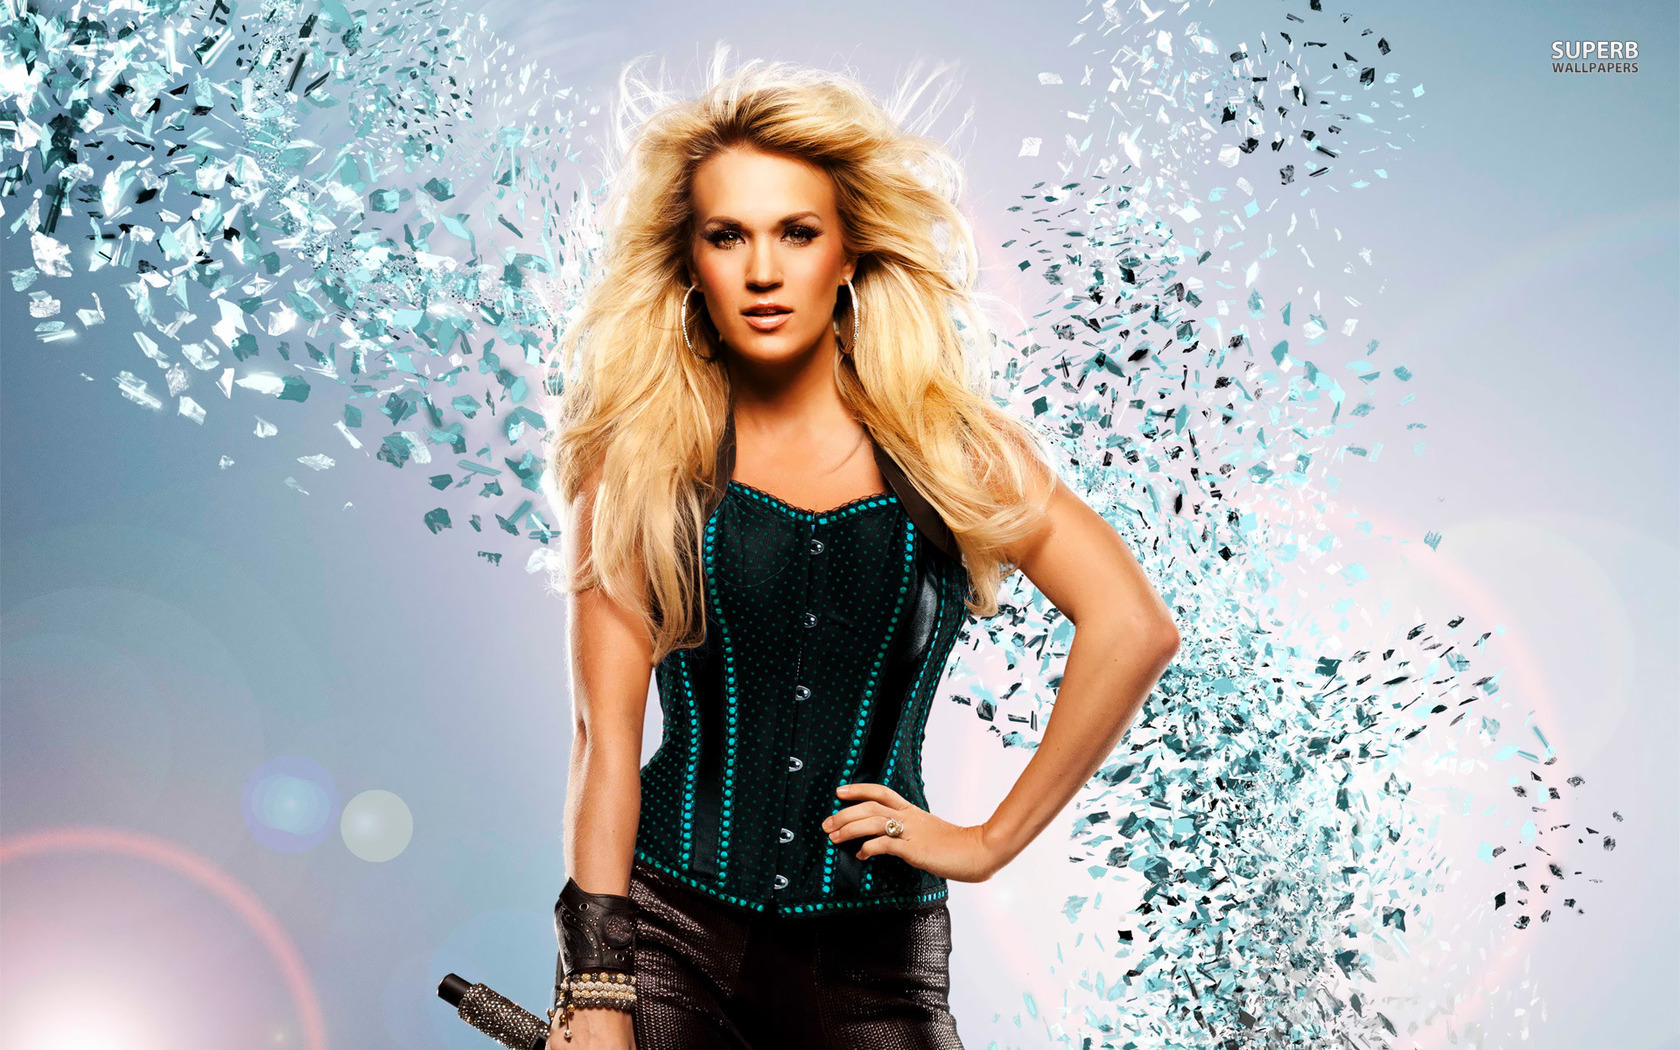 Carrie underwood wallpaper hd full hd pictures - Carrie underwood hd wallpaper ...